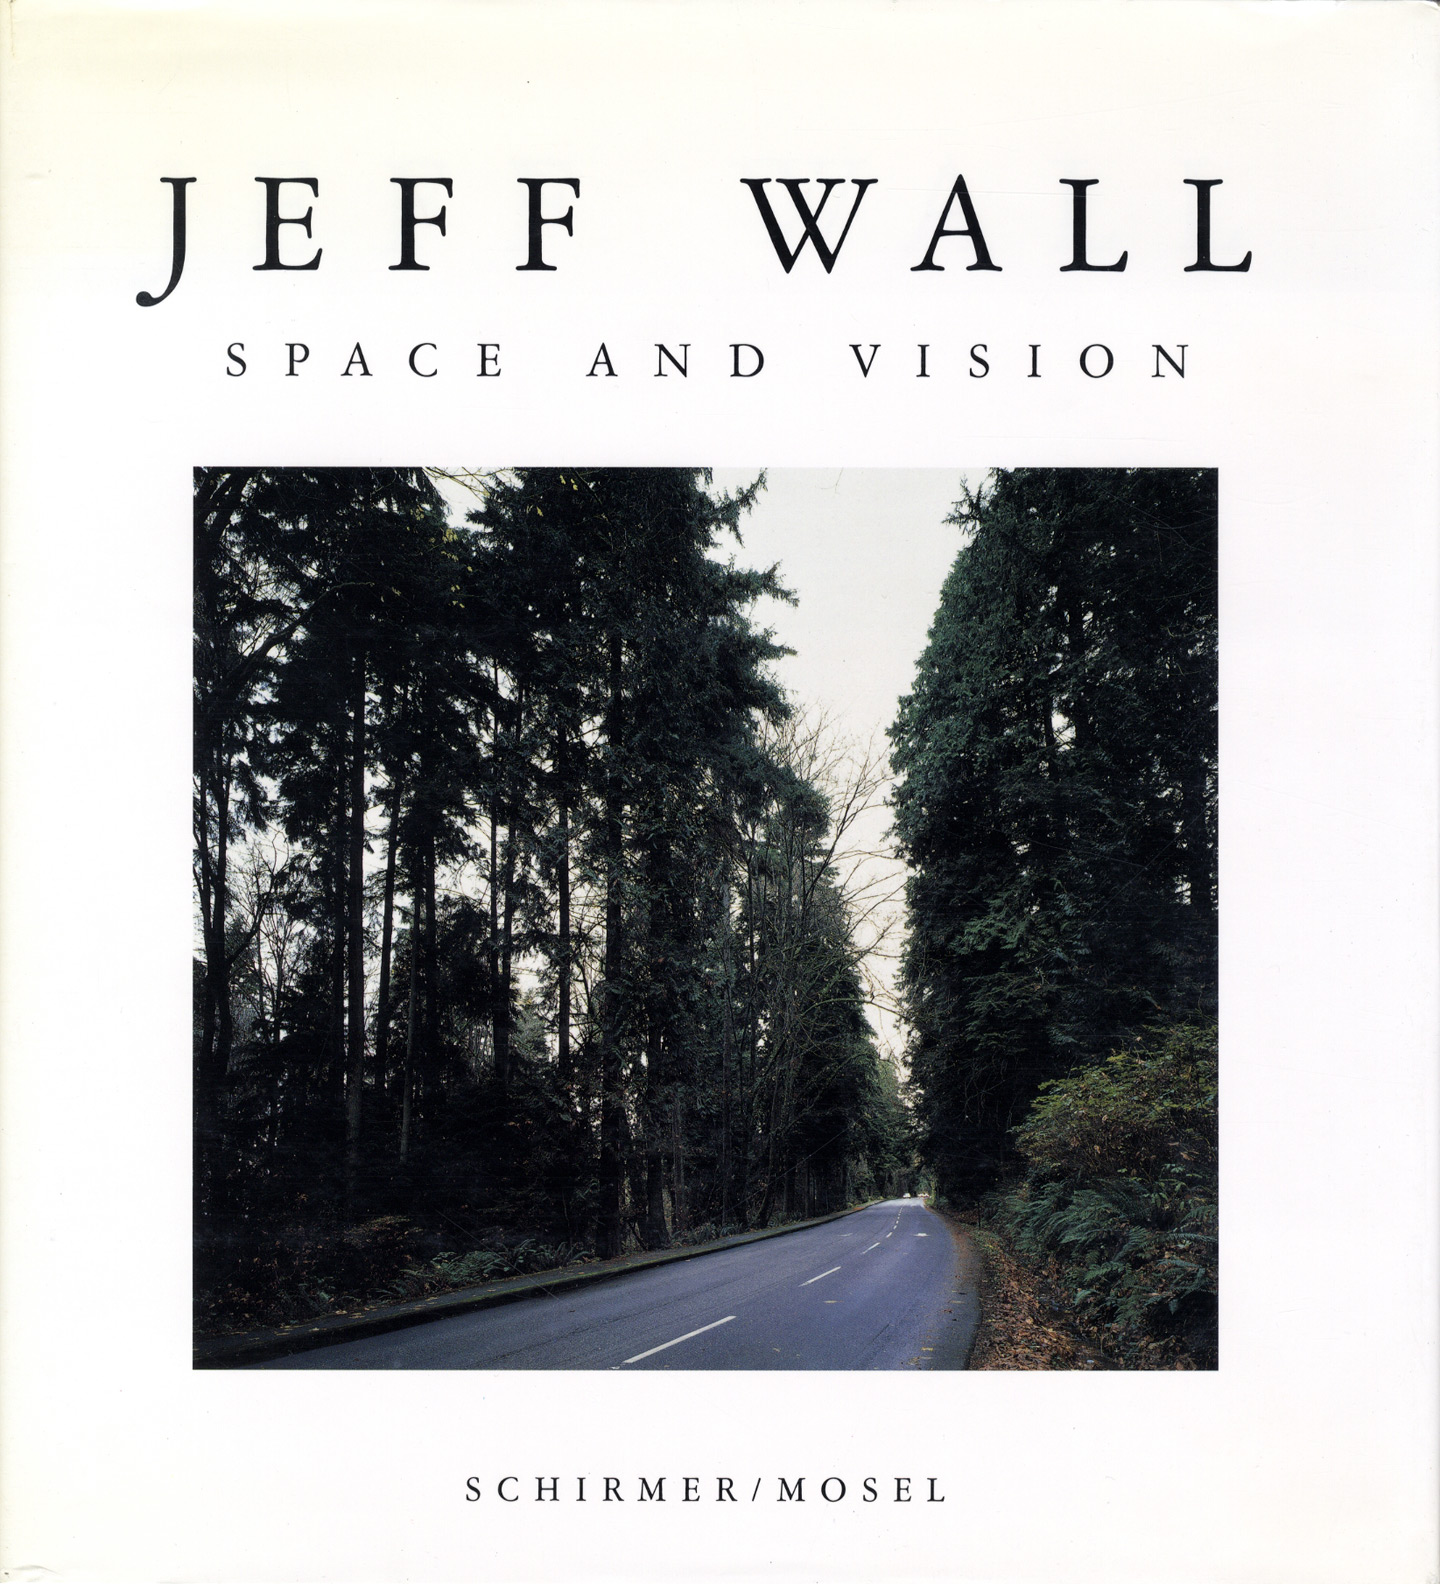 Jeff Wall: Space and Vision